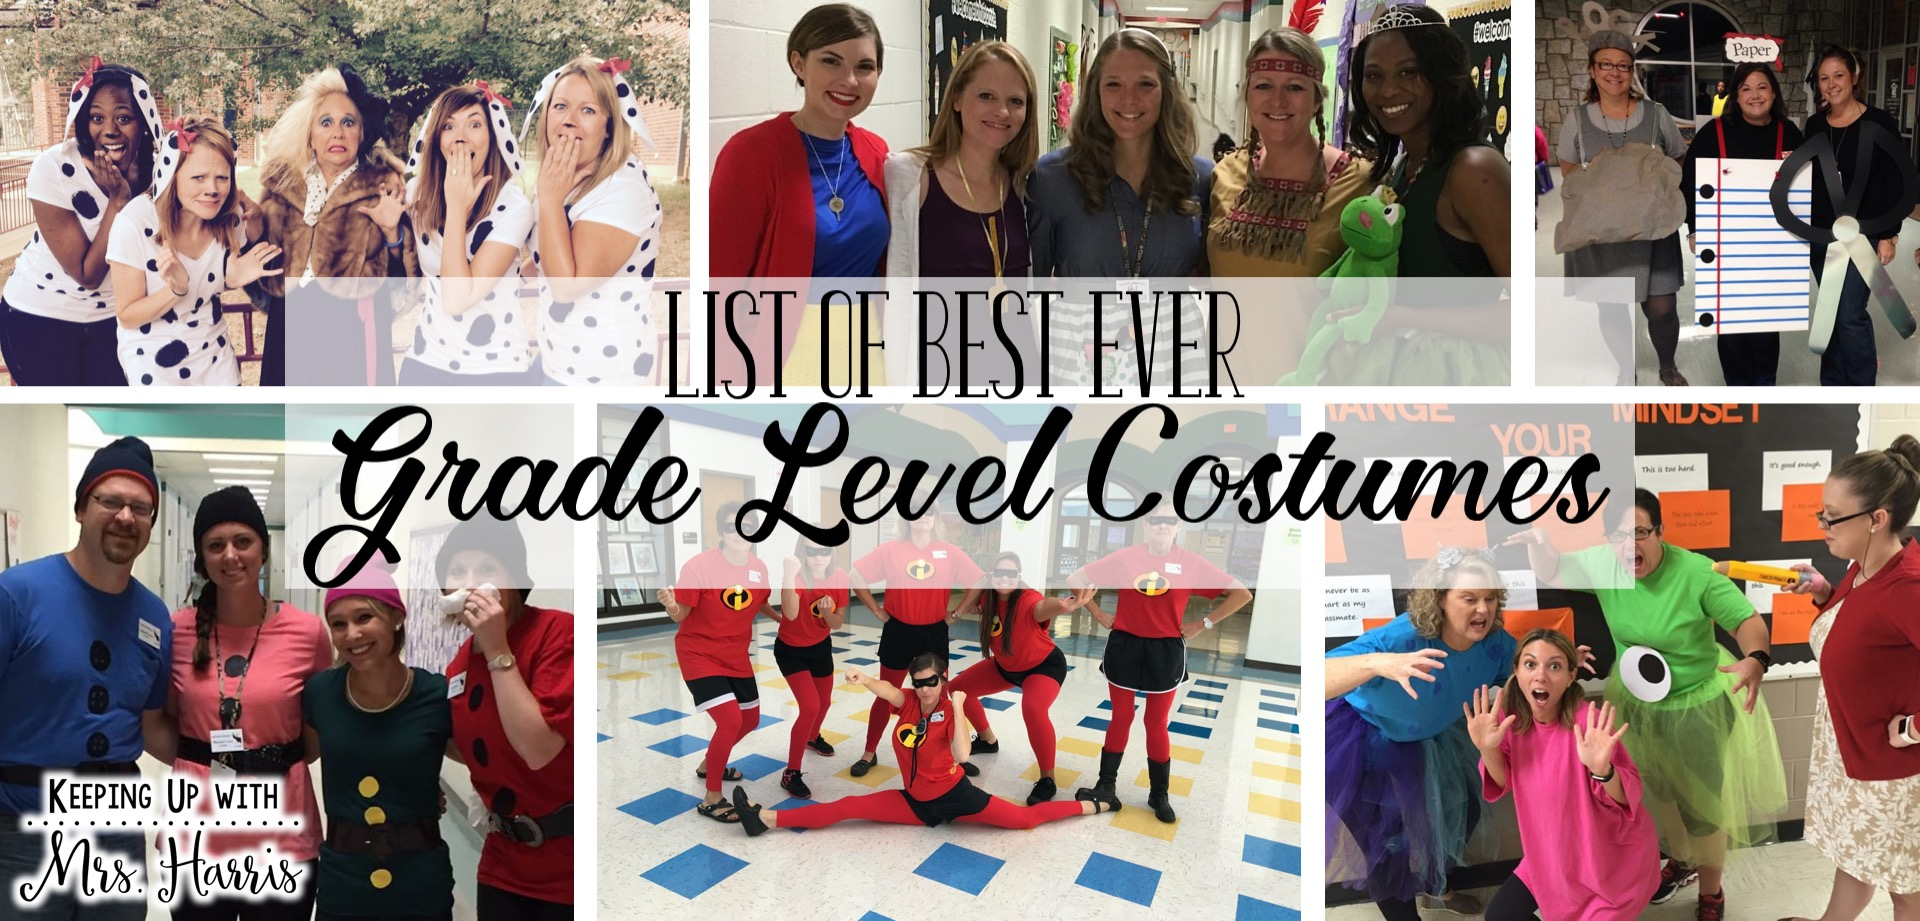 the best ever grade level costumes (for teachers!) | the tpt blog